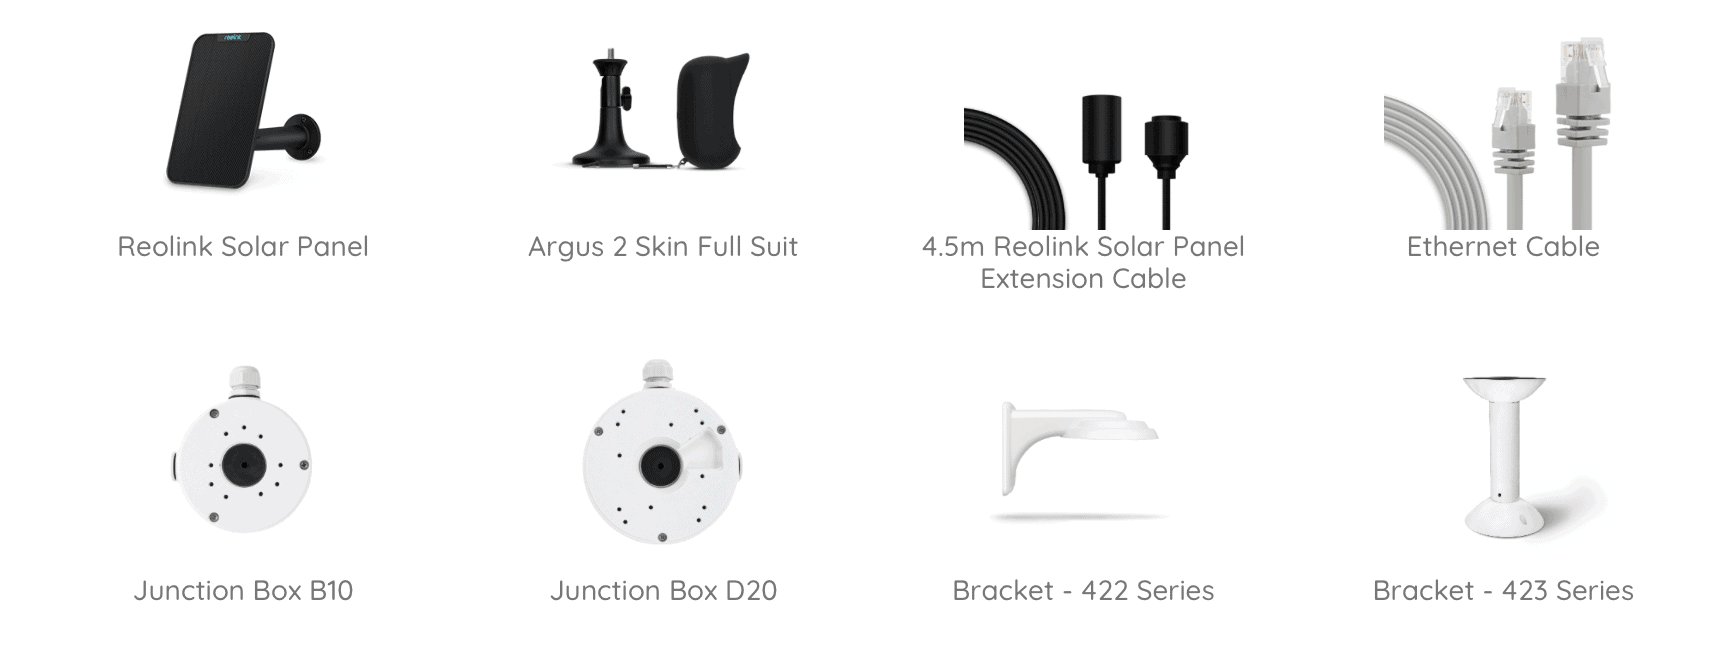 Reolink Accessories